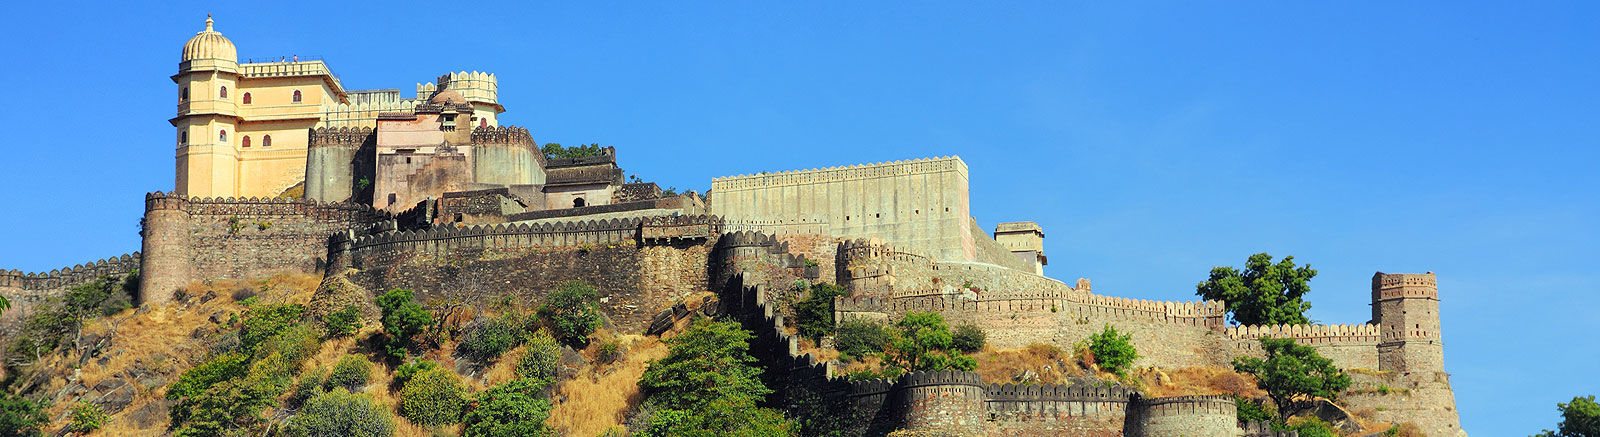 Cab Rental Services in Udaipur | Hire a Cab in Udaipur